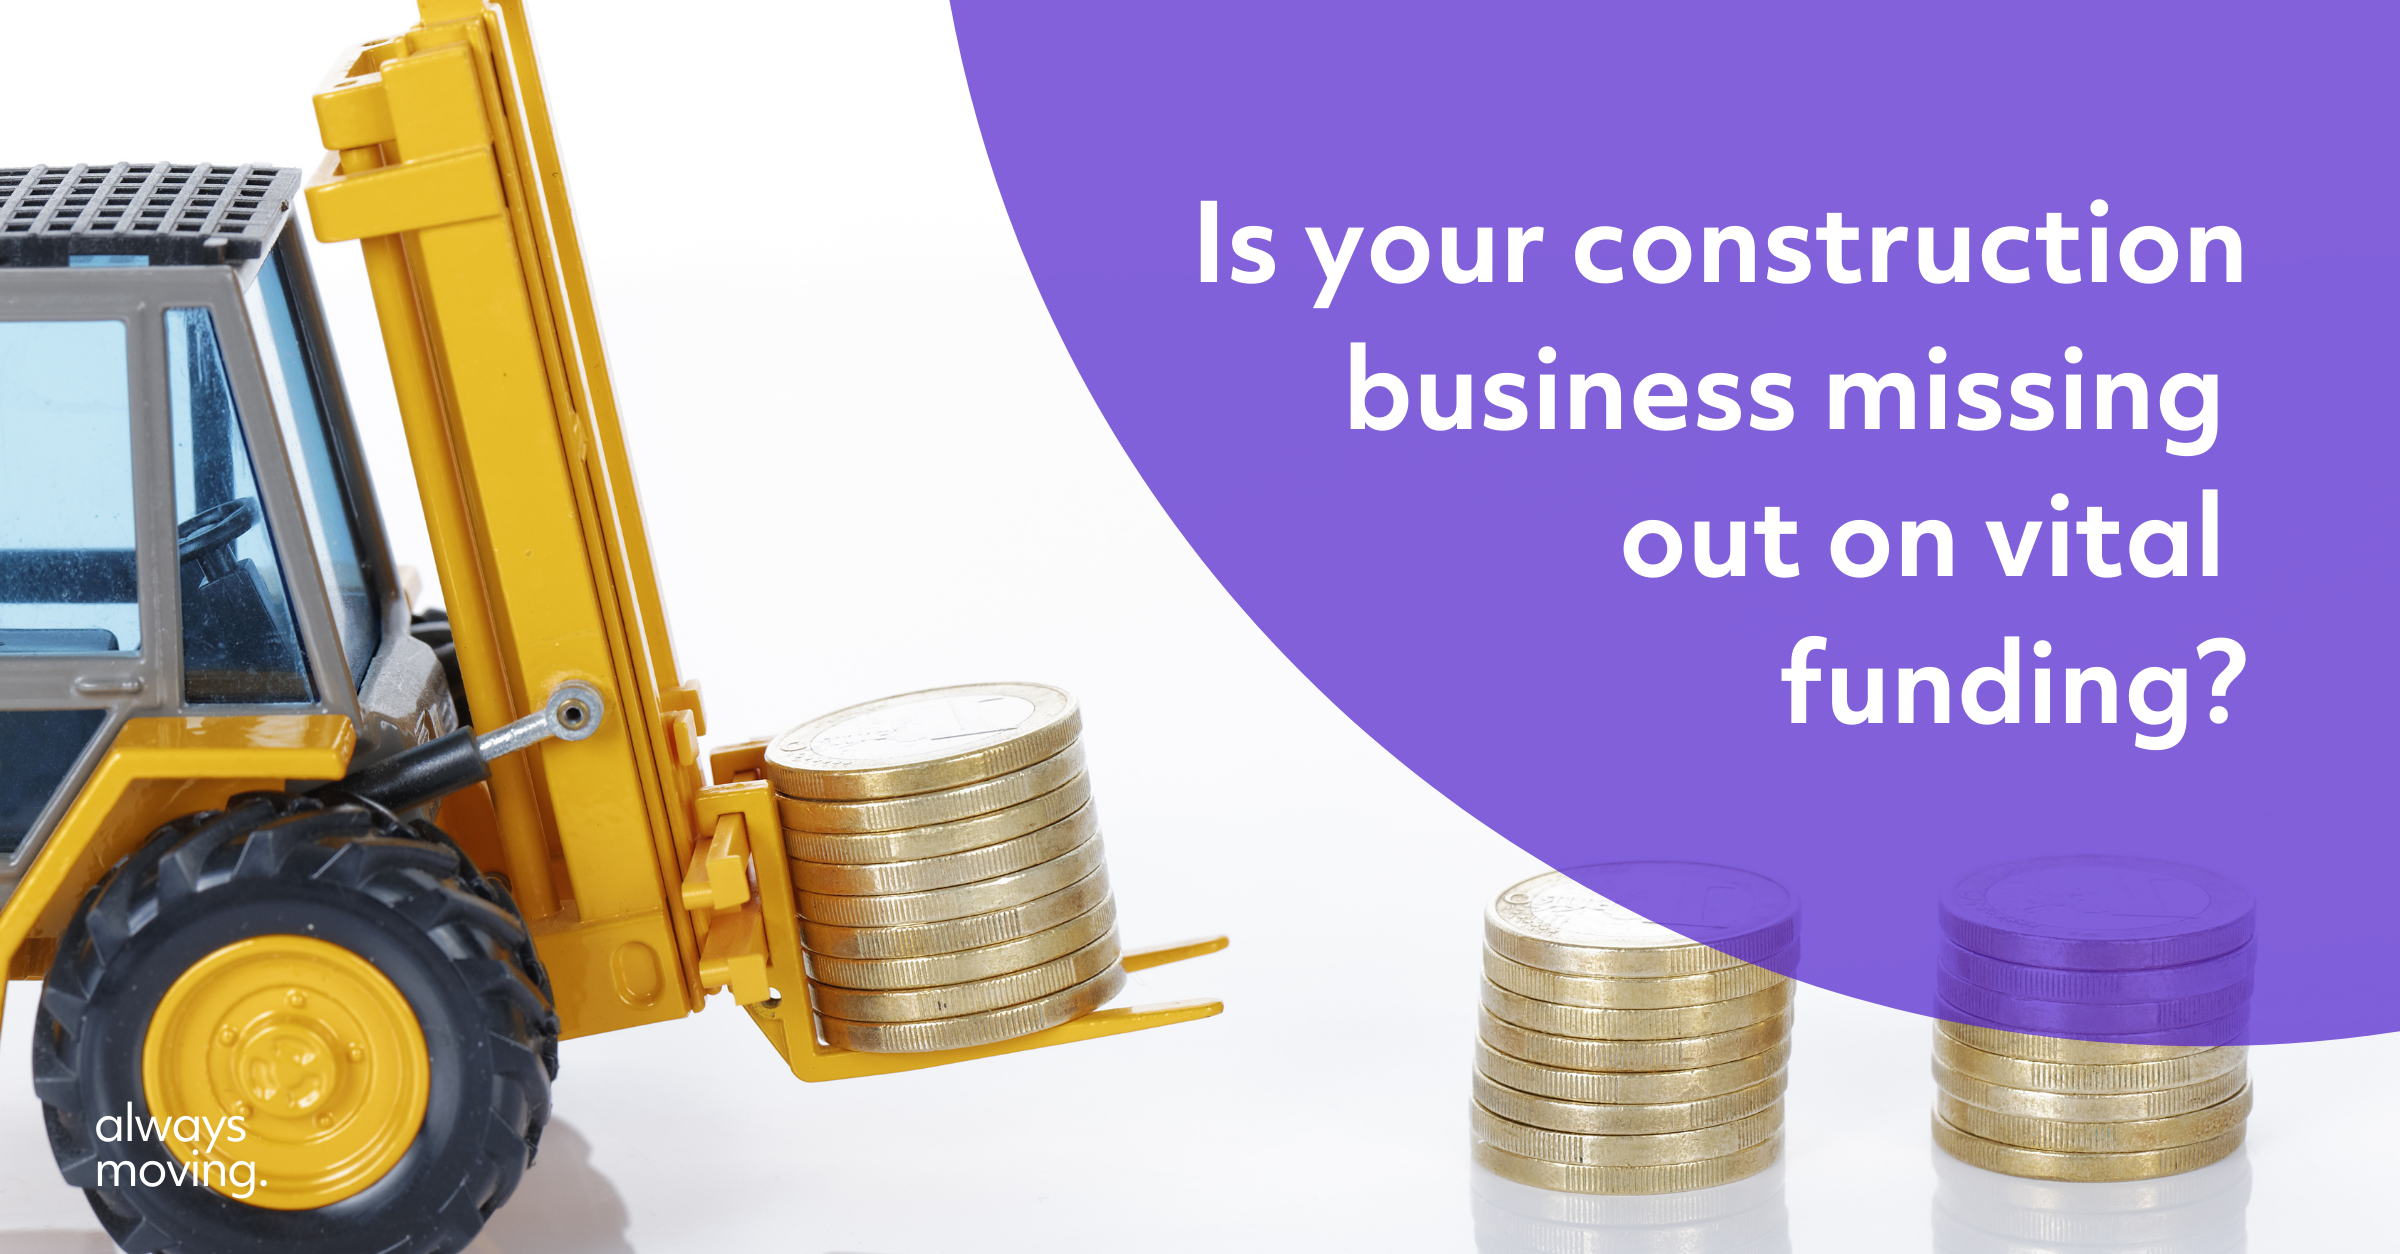 Why is your construction business missing out on funding